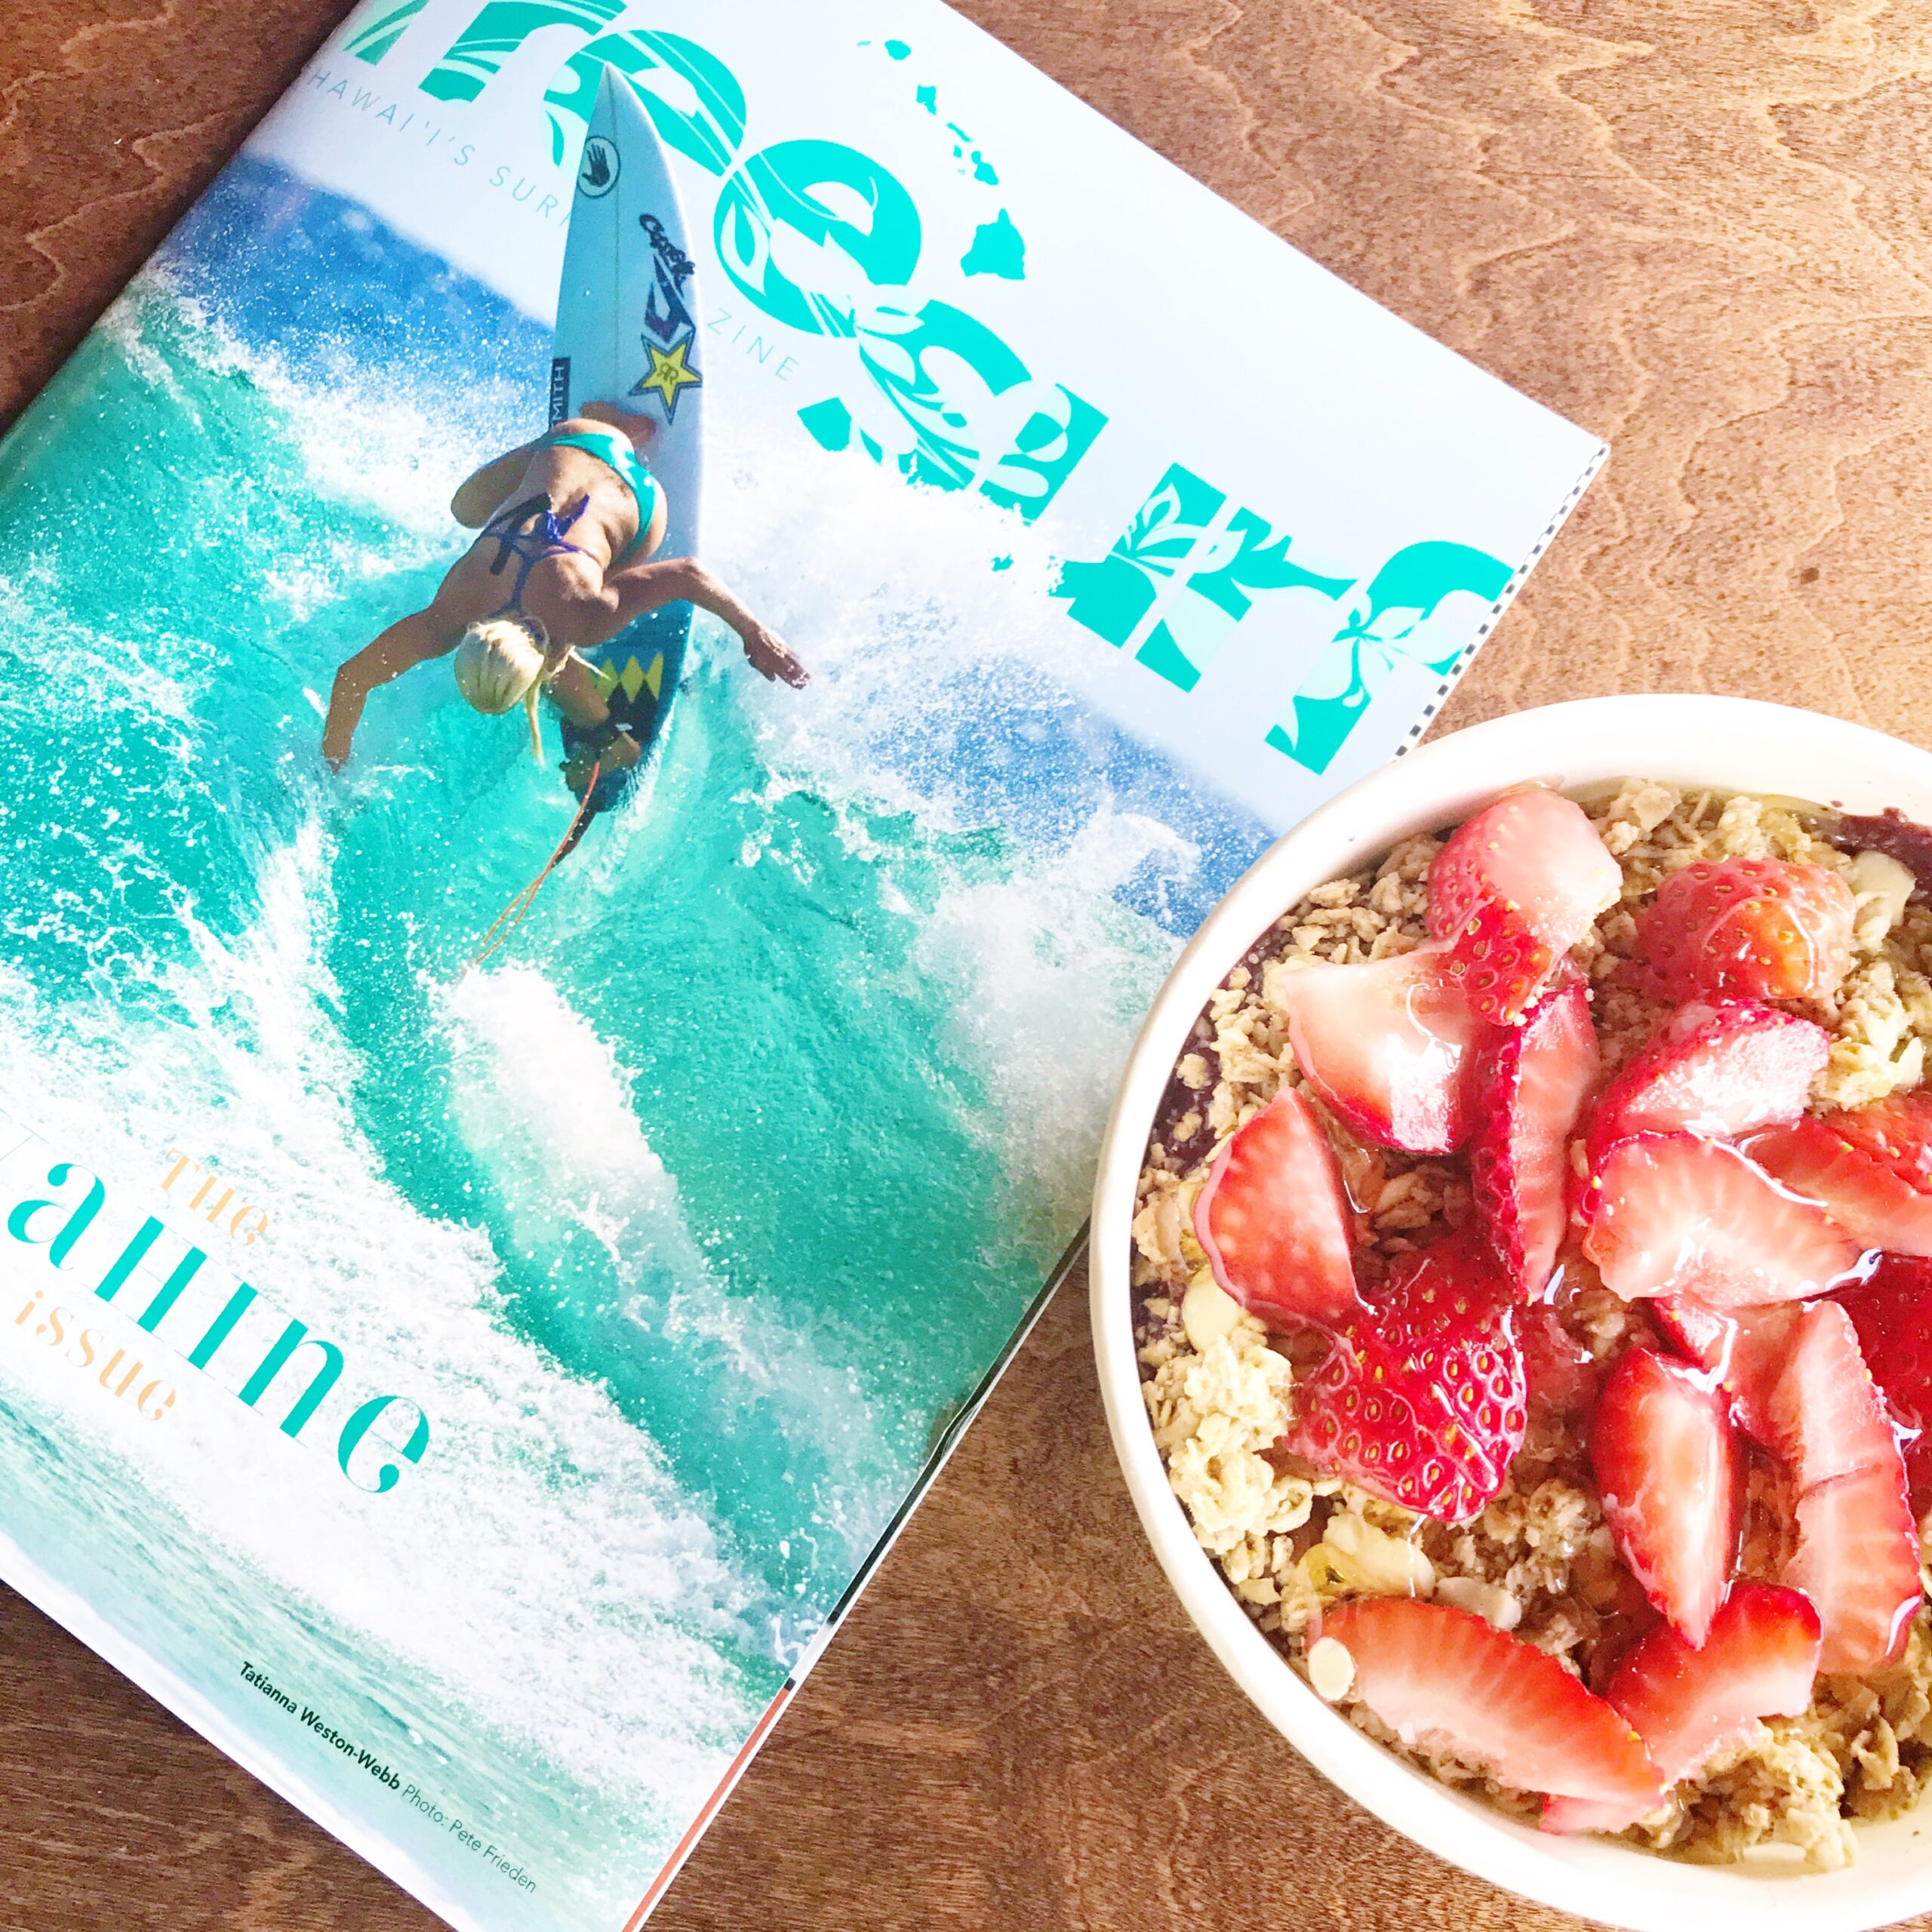 Ultimate Guide To Central Oahu -Looking for the best places to eat, shop, and live in central Oahu? Today's helpful post is sharing all of that + more! | Oahu Travel Guide - Wahiawa - Mililani - Pearl City